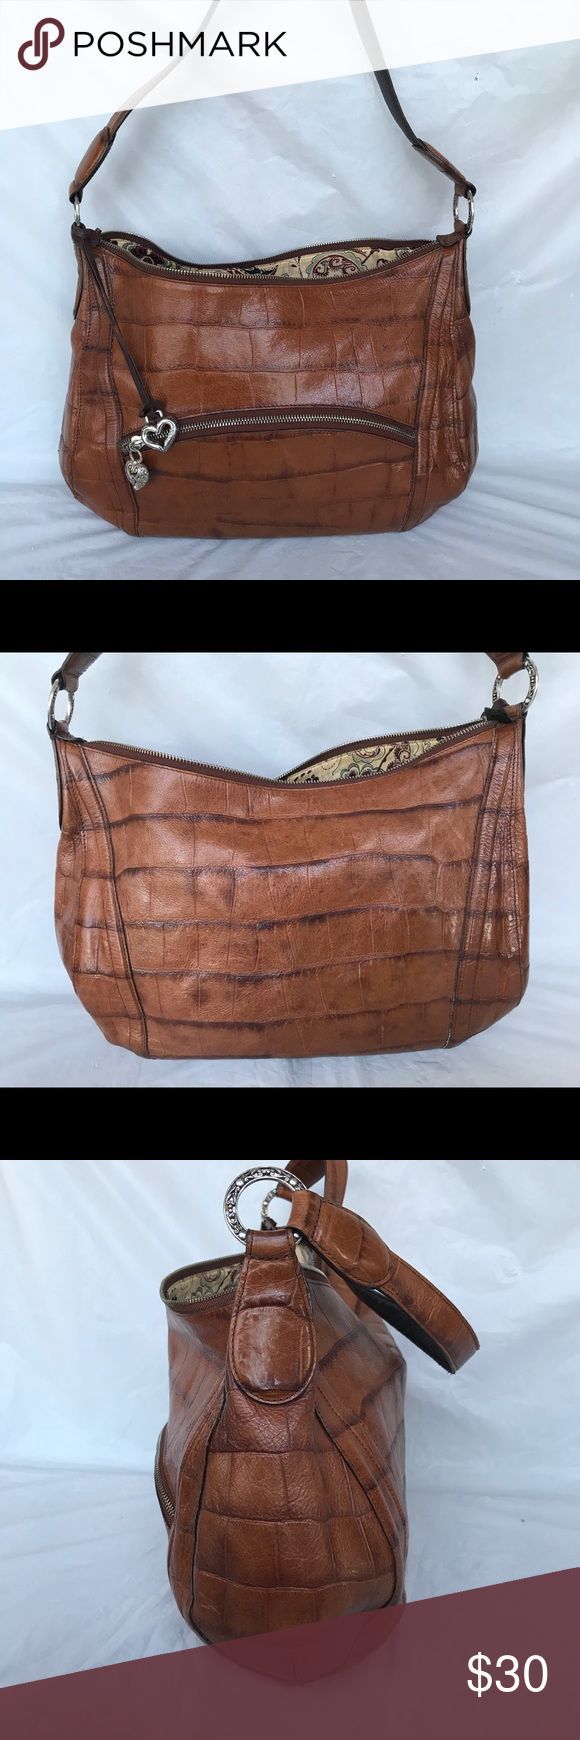 Brighton Bag Croc embossed brown leather bag in gently used condition. Zipper broken noted in price . Offers welcome Brighton Bags Shoulder Bags